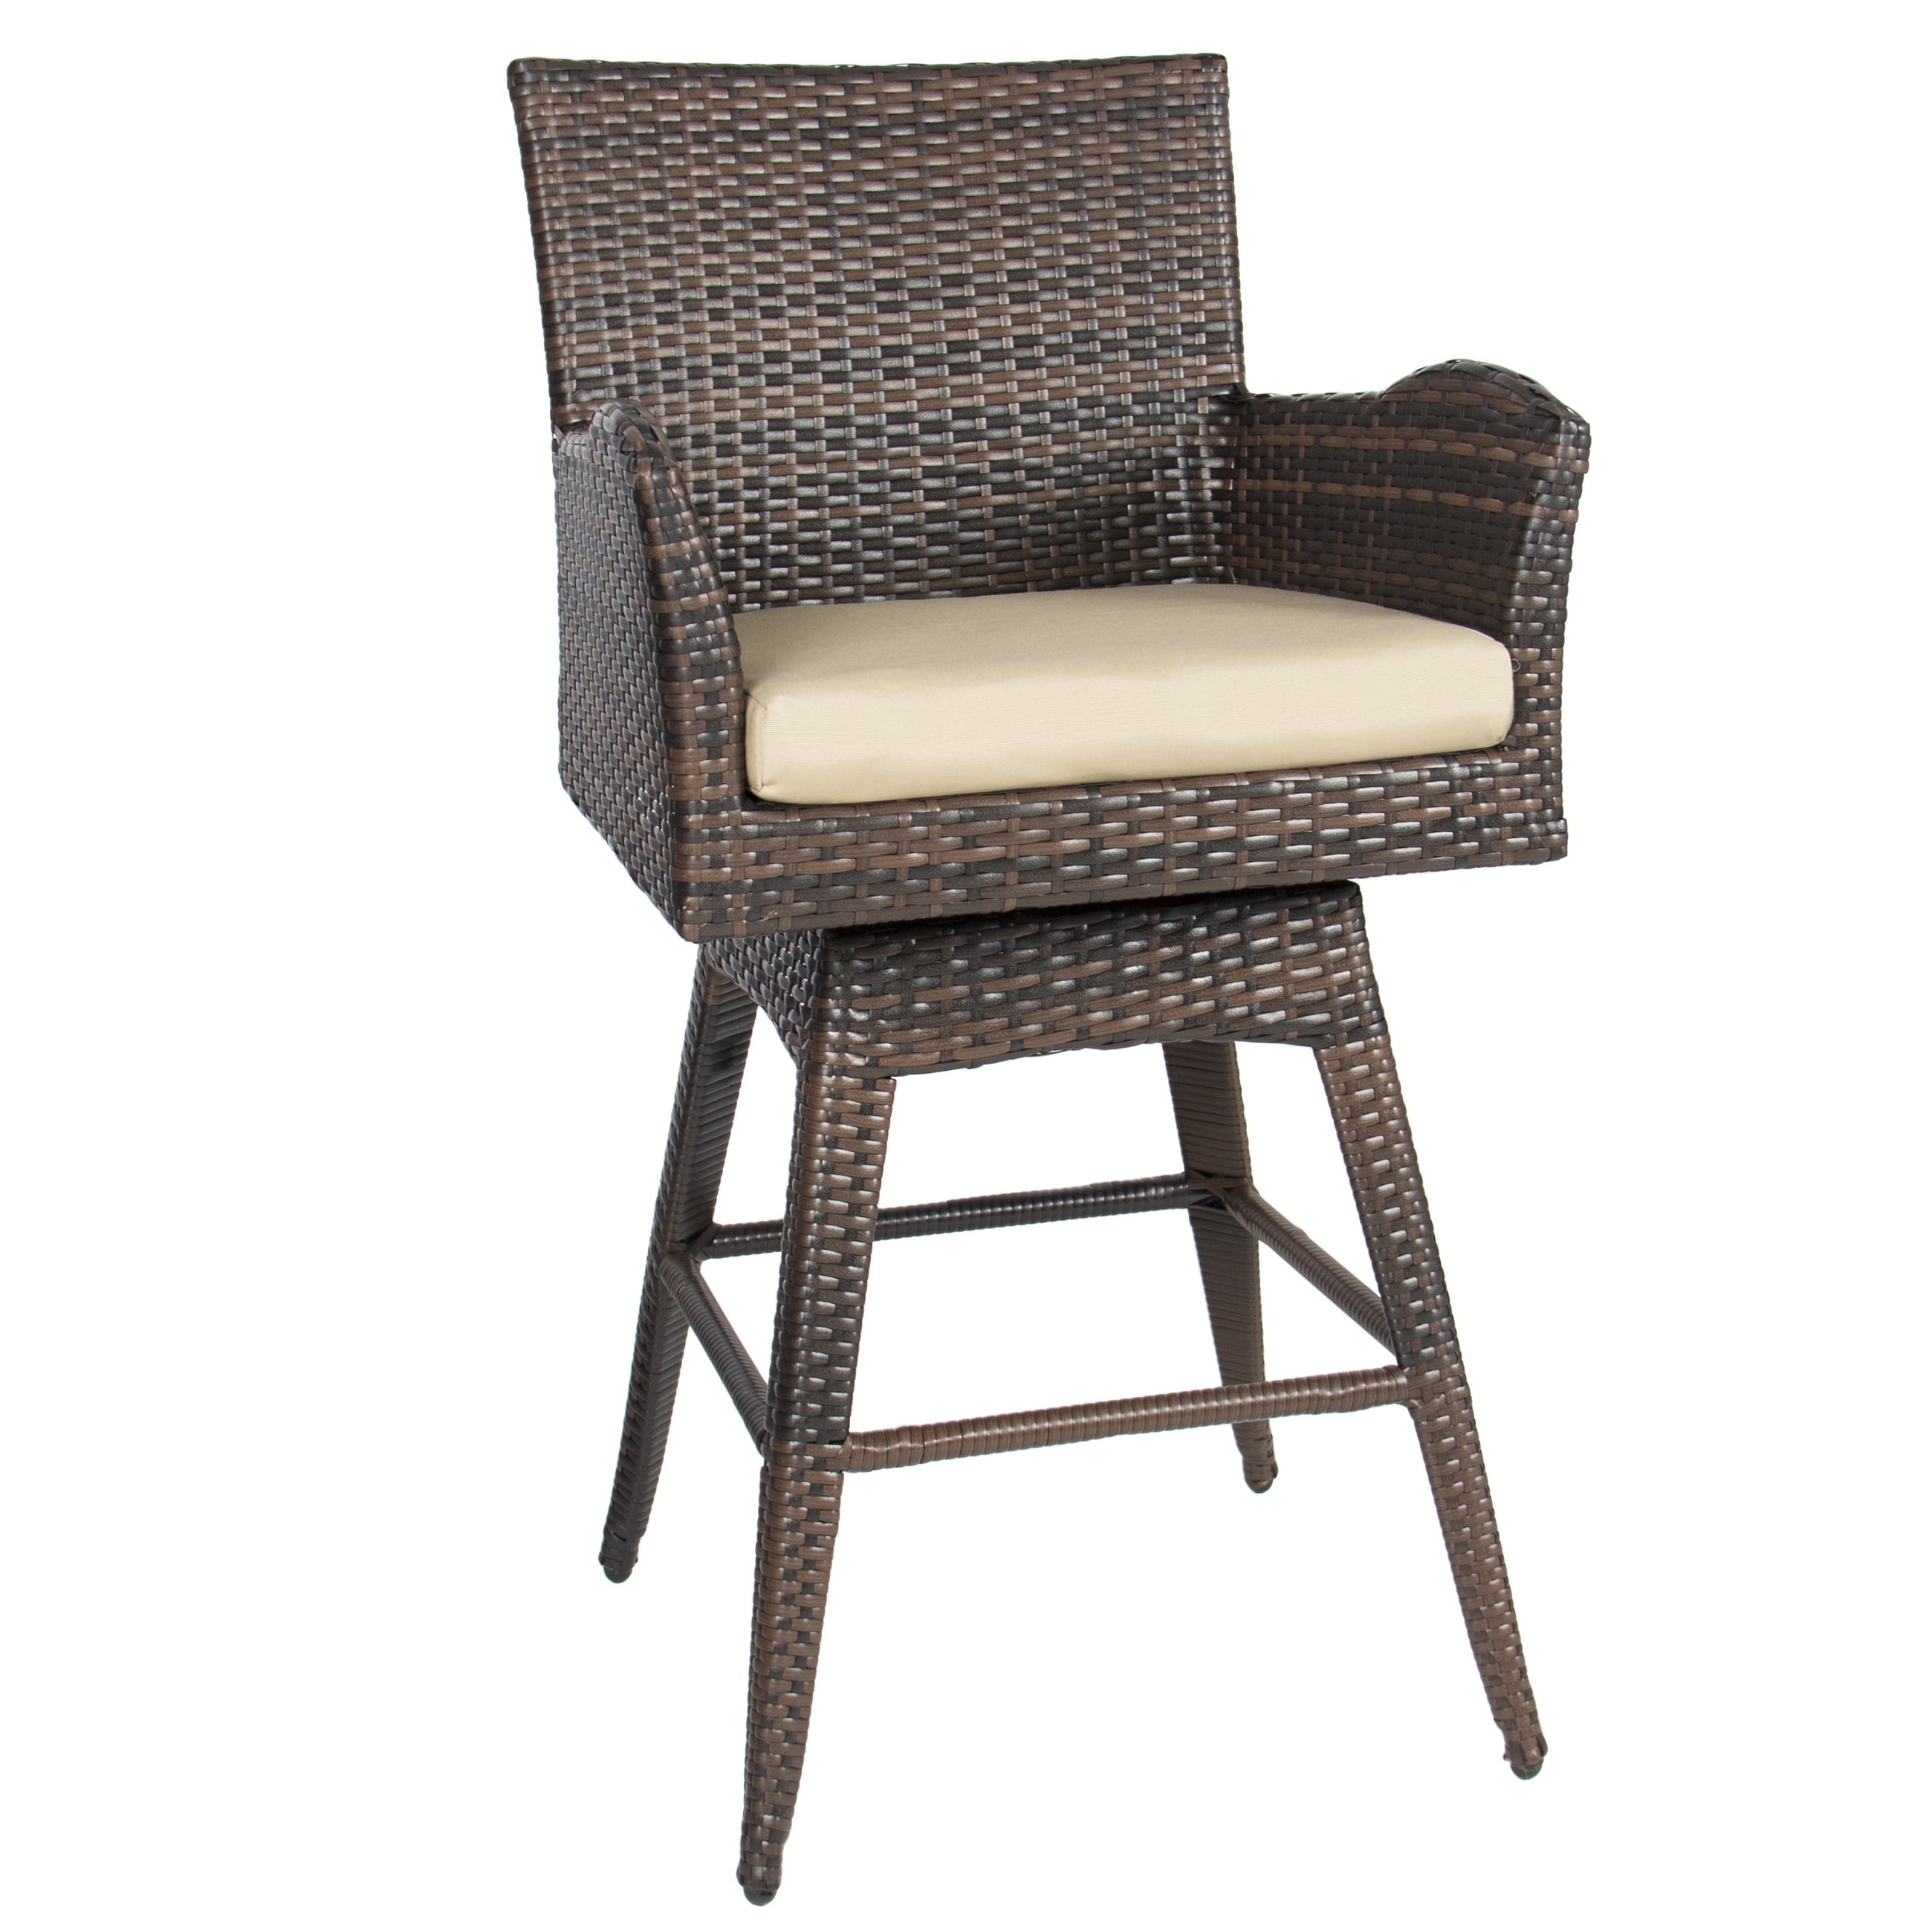 Outdoor Patio Furniture All Weather Brown PE Wicker Swivel Bar Stool W/  Cushion   Walmart.com